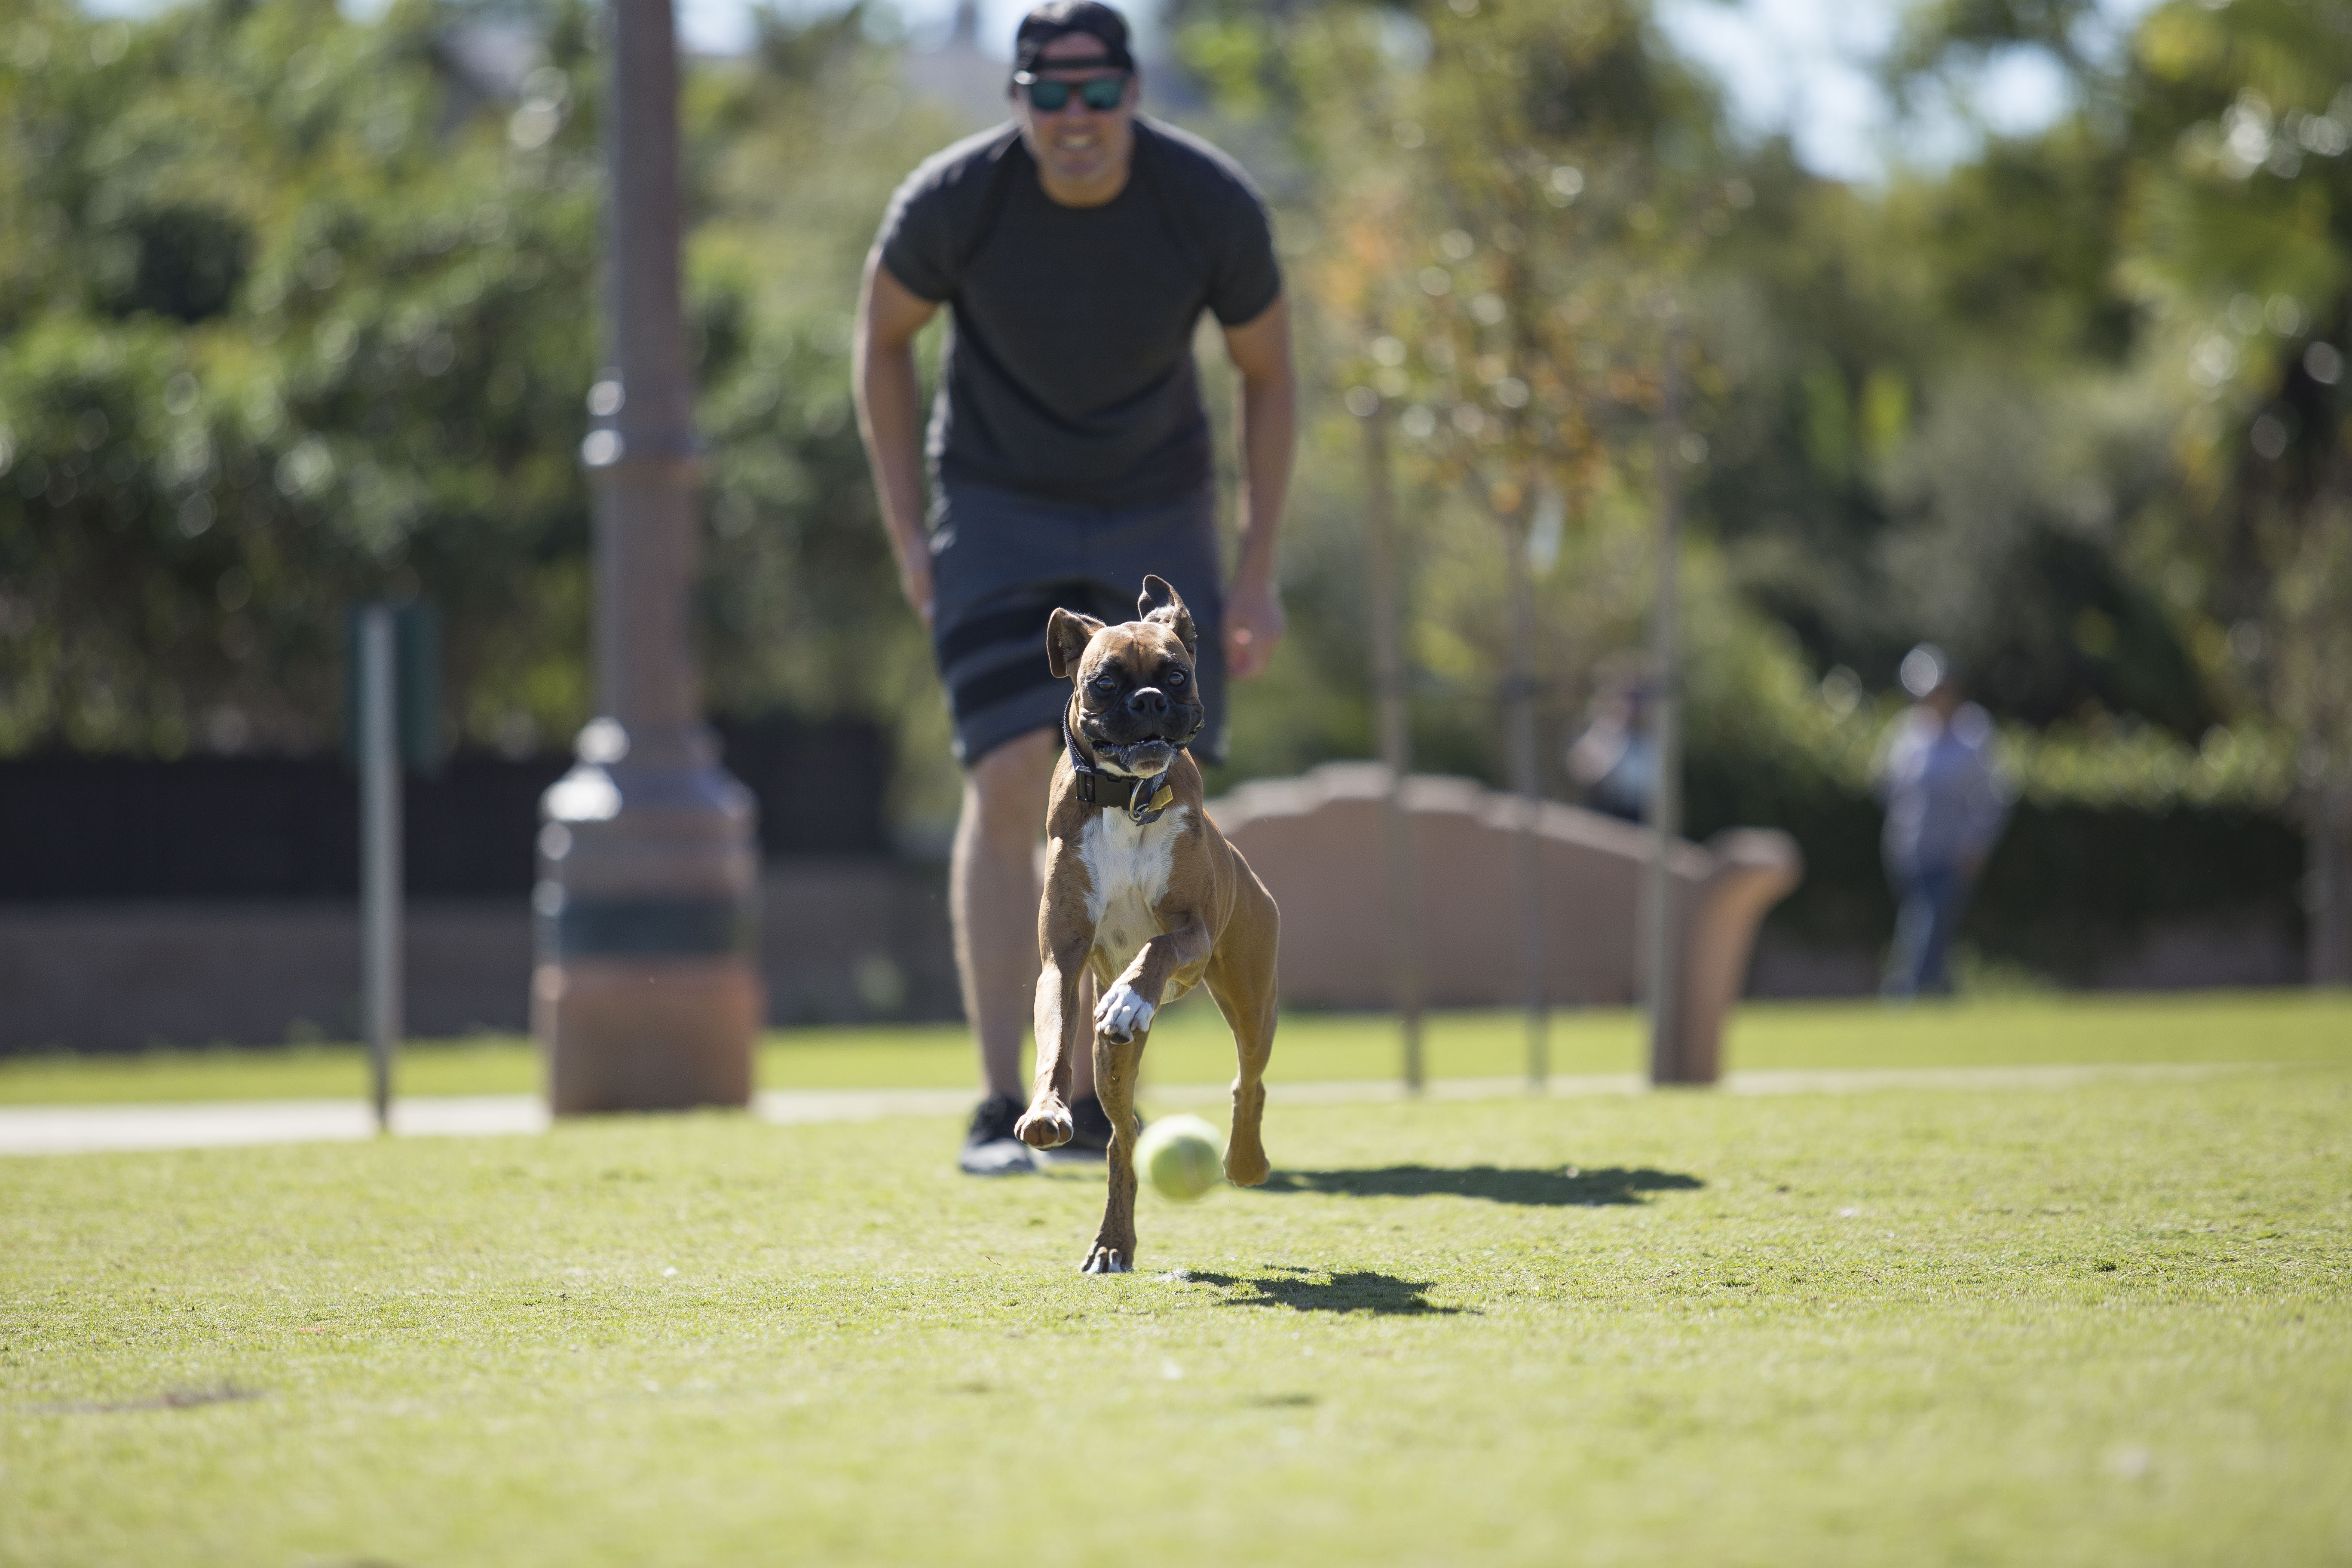 Dog Park closed for maintenance and improvements October 2 to October 30